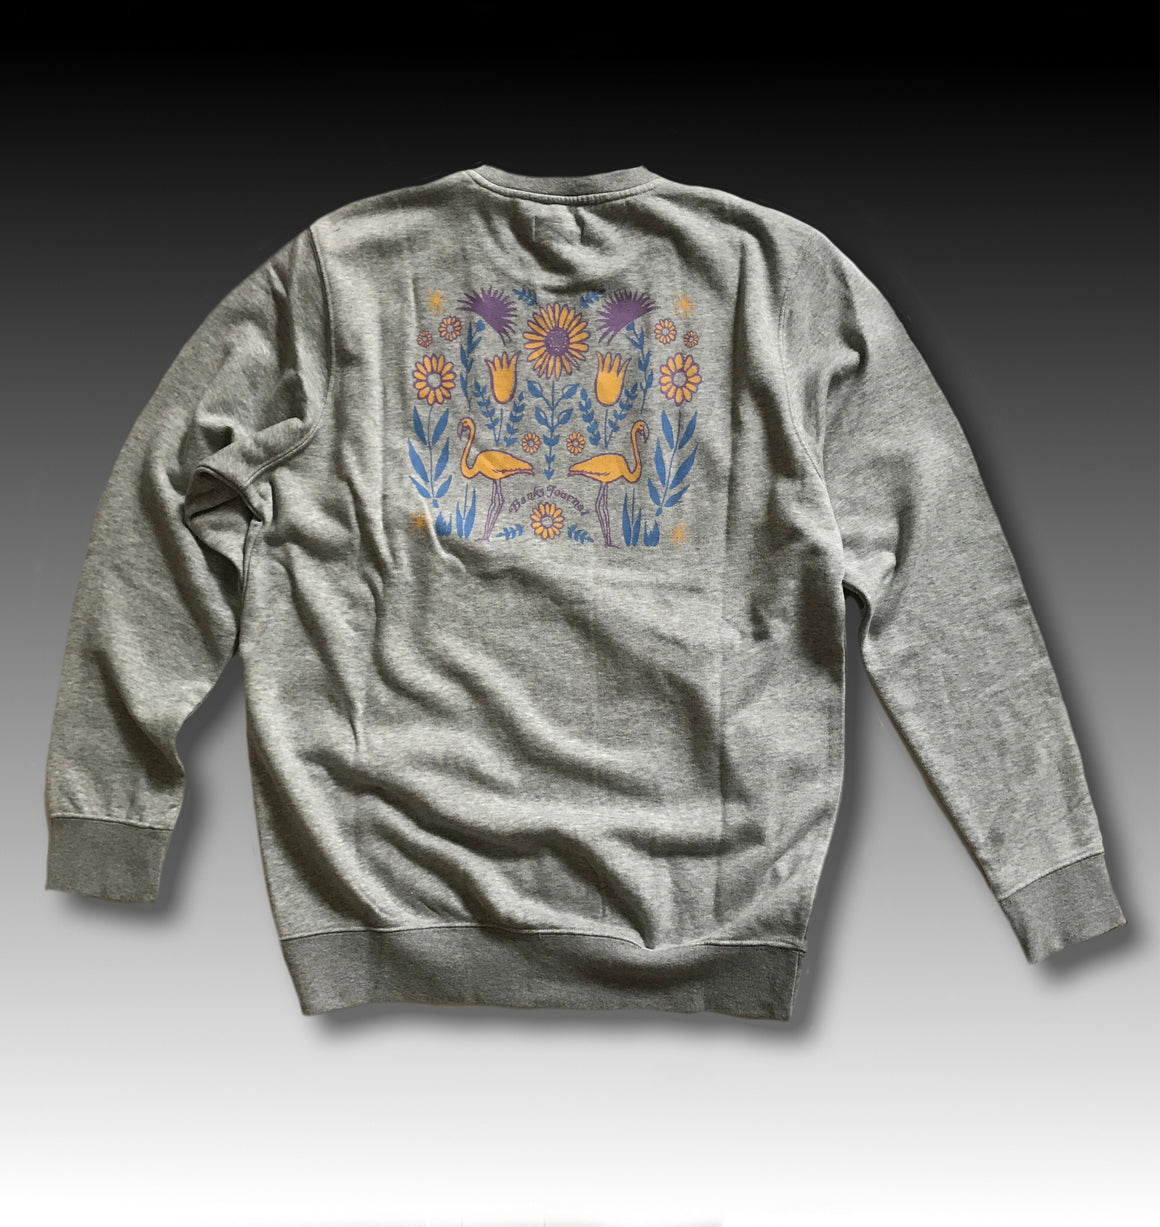 SPRING CREW HEATHER GREY